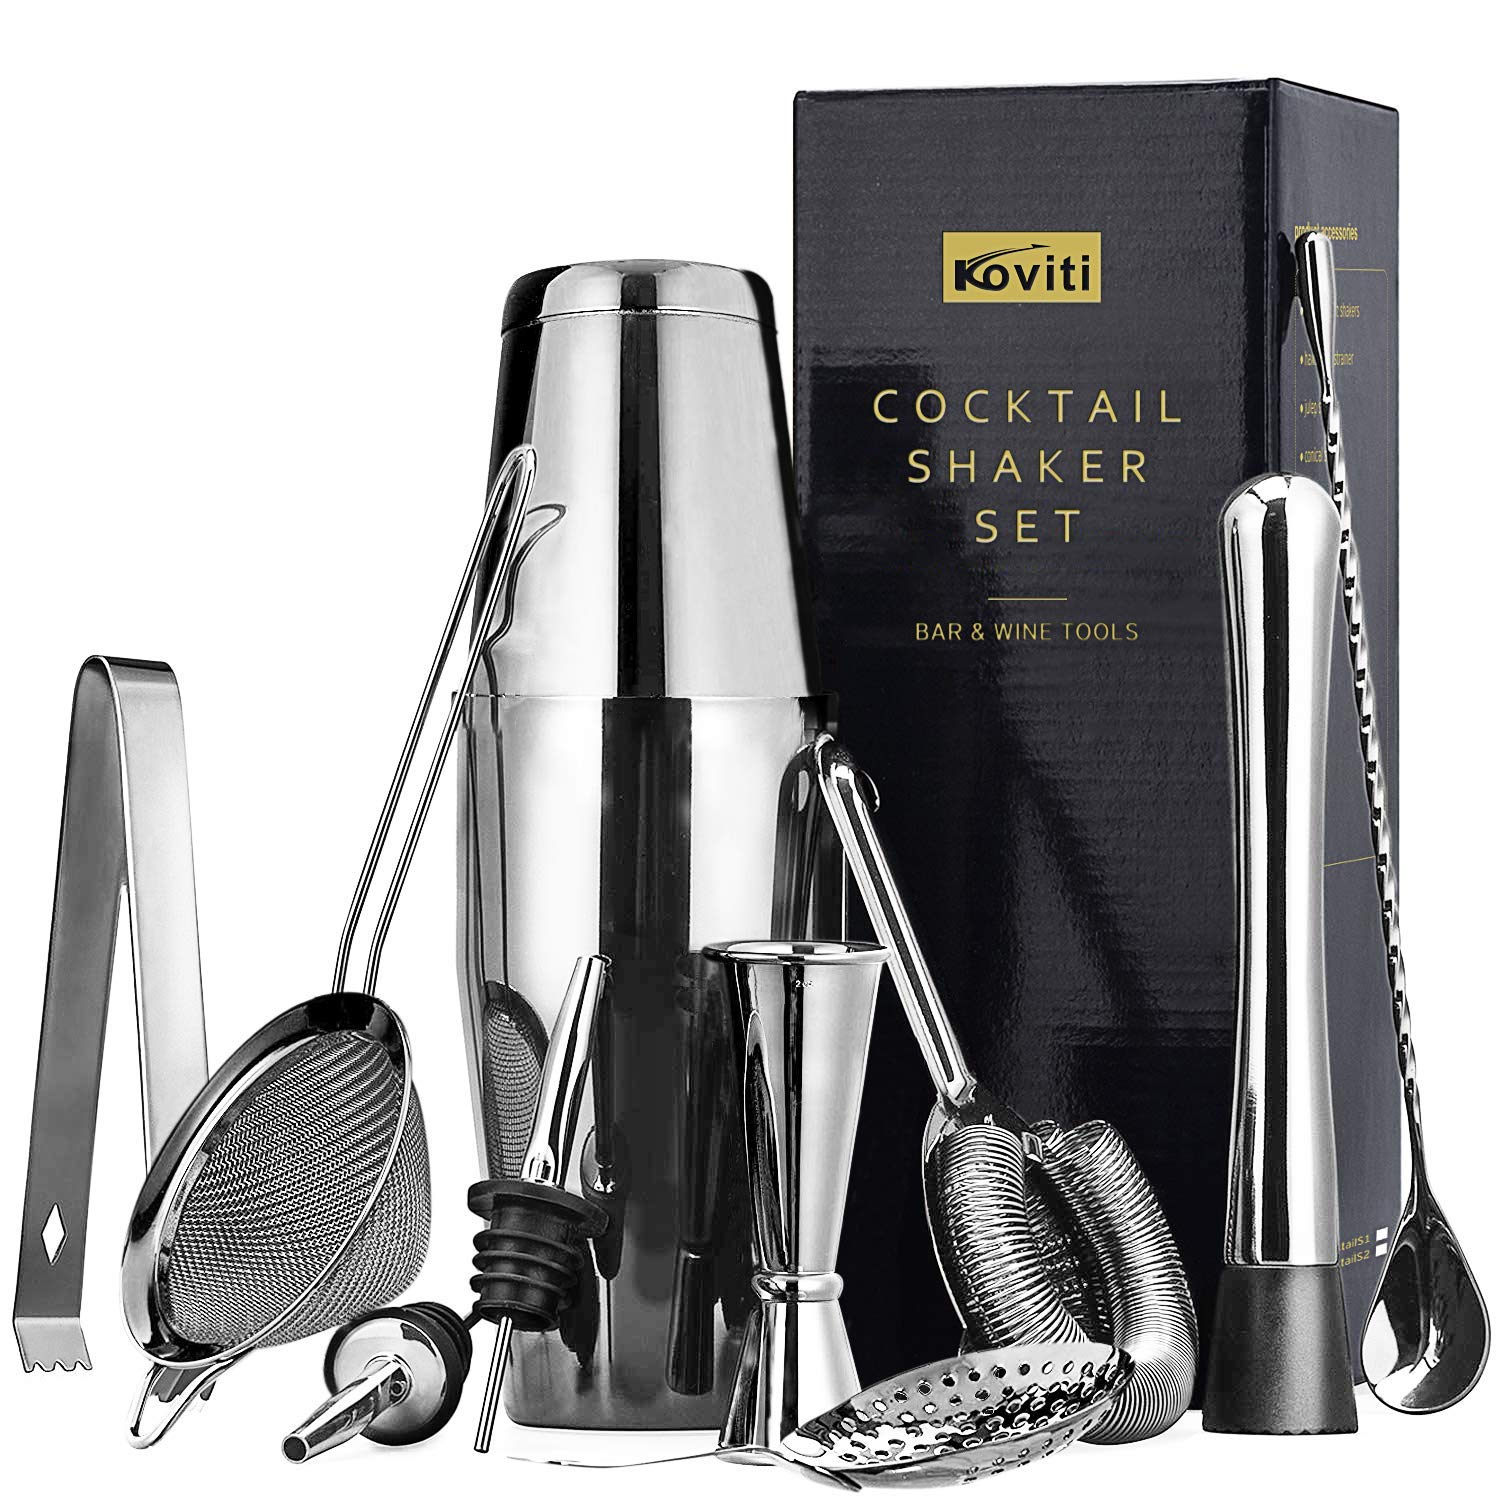 11 Piece Cocktail Shaker Set, Koviti Stainless Steel Bartender Kit - 18 and 28 oz Shakers,Cocktail Strainer Set,Cocktail Muddler and Spoon,Measuring Jigger,2 Liquor Pourers and Ice Tong by Koviti